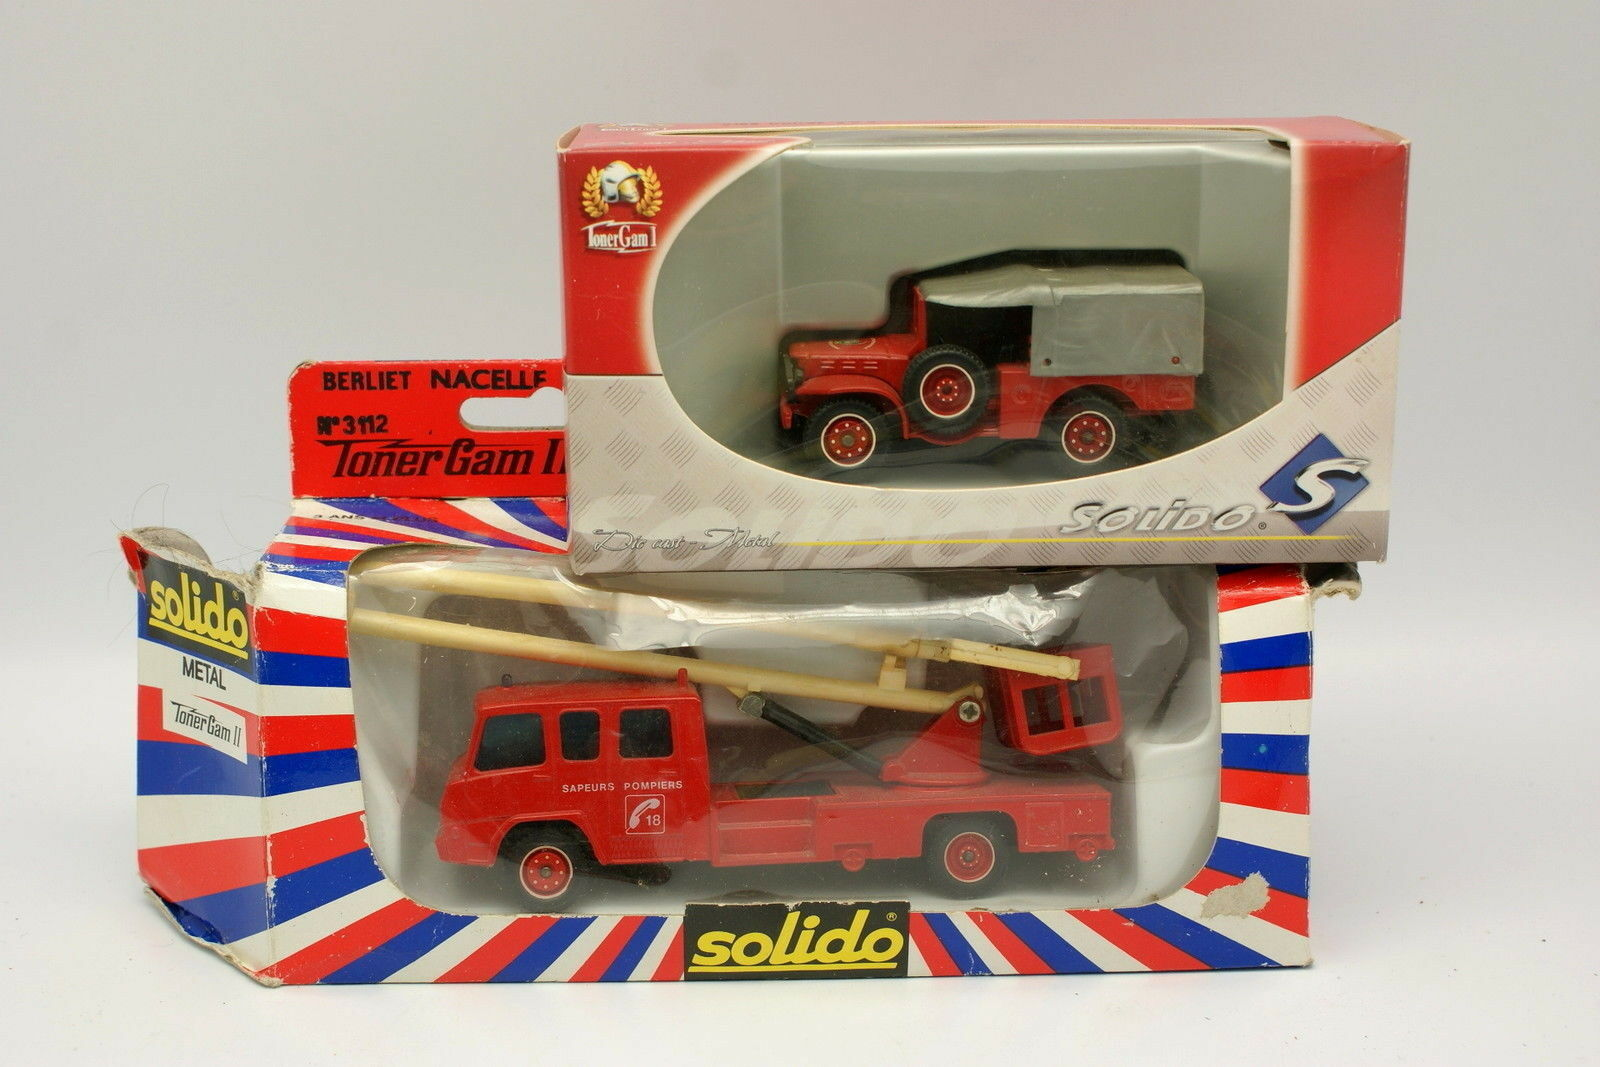 Solido 1 50 - Set of 2 Firefighters Berliet Nacelle and Dodge